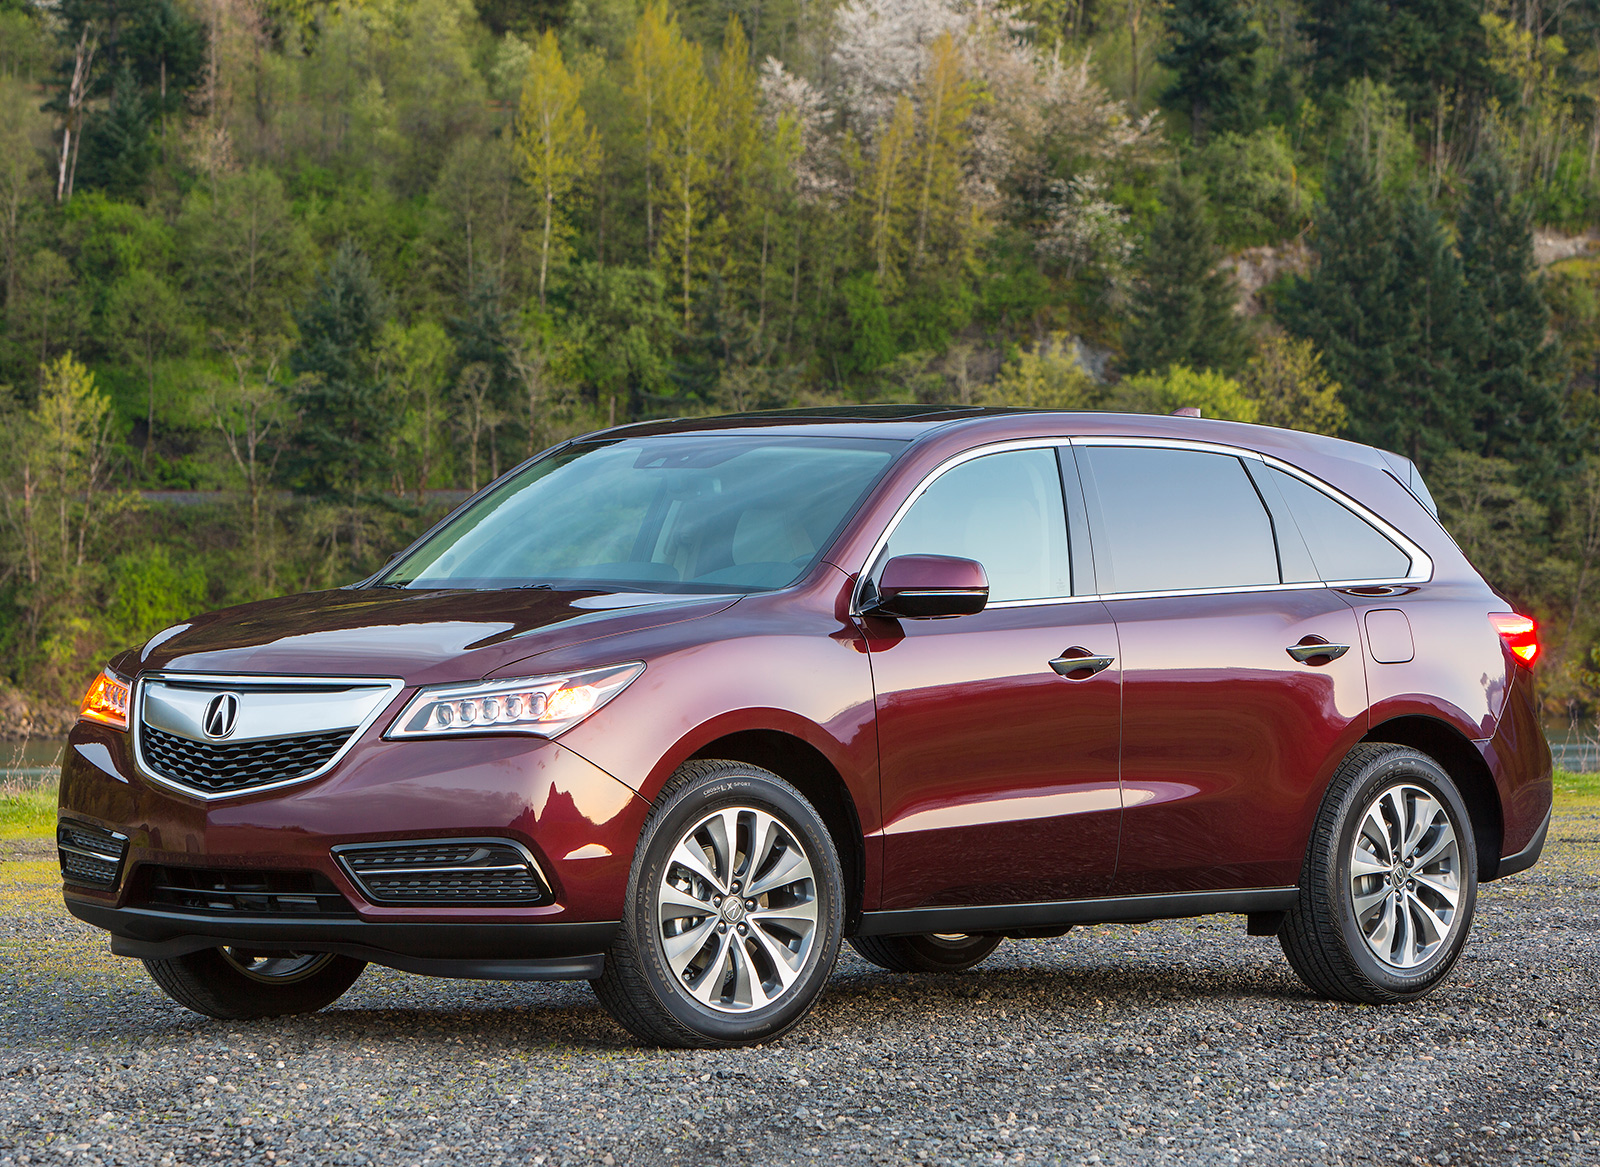 The New Transmission On Freshened Luxury Suv Might Not Be An Improvement